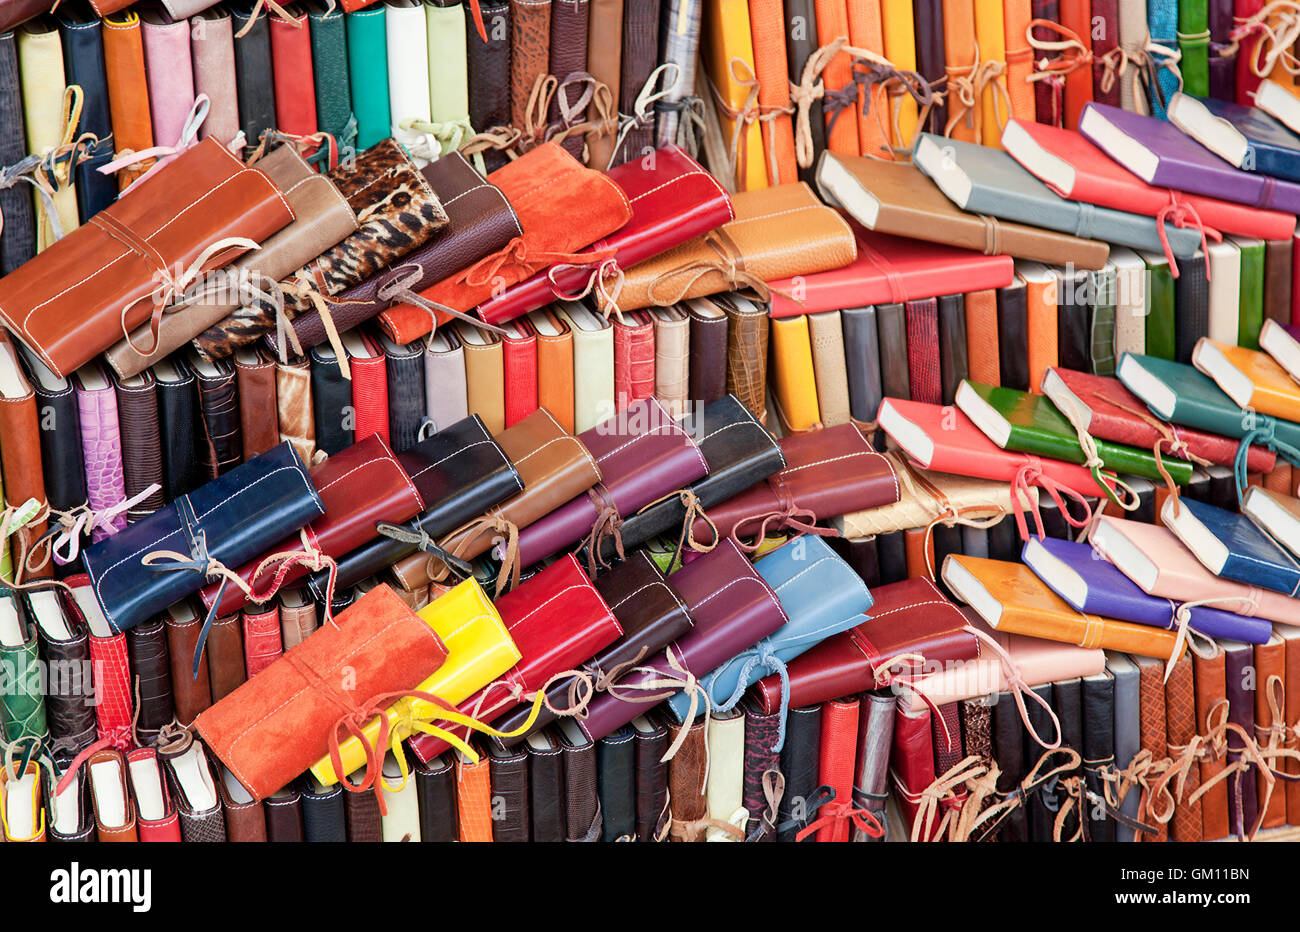 Leather diaries for sale in the markets of Florence, Italy. - Stock Image